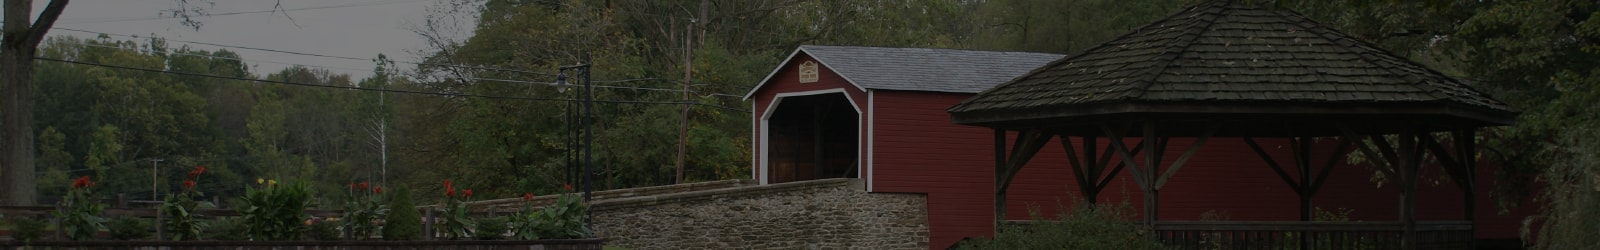 Annual 5k/10k Kreidersville Covered Bridge Challenge